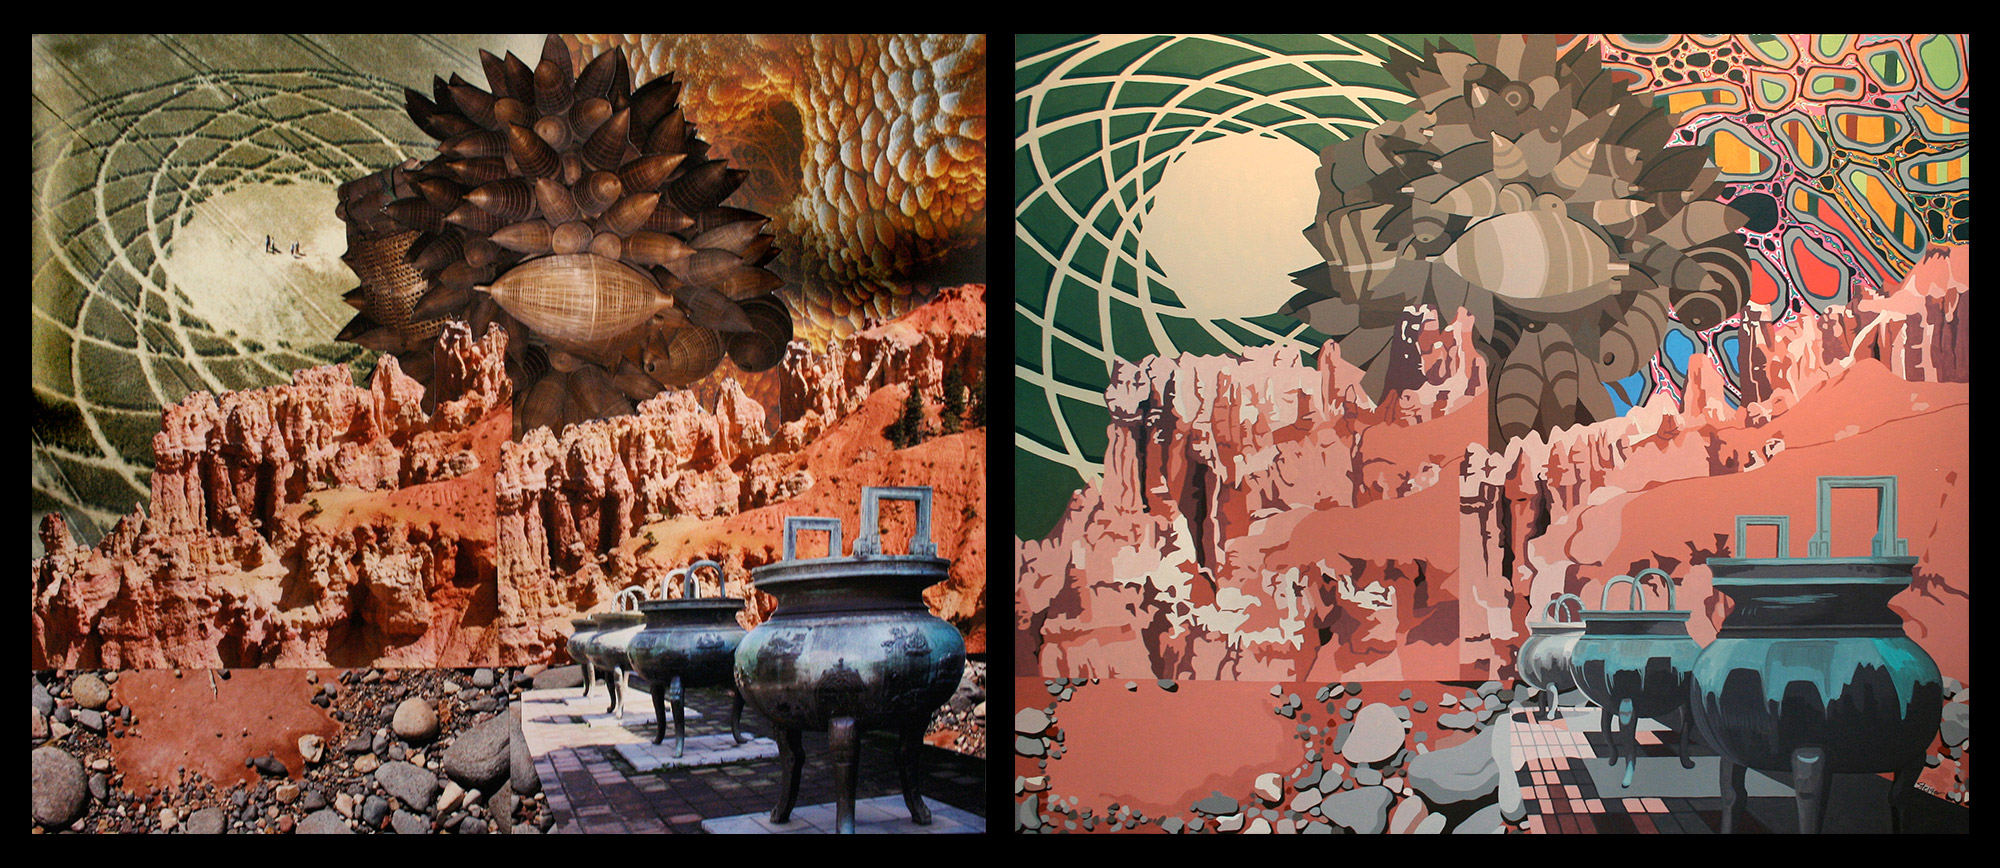 Collision, collage on paper (left) and acrylic on canvas (right)